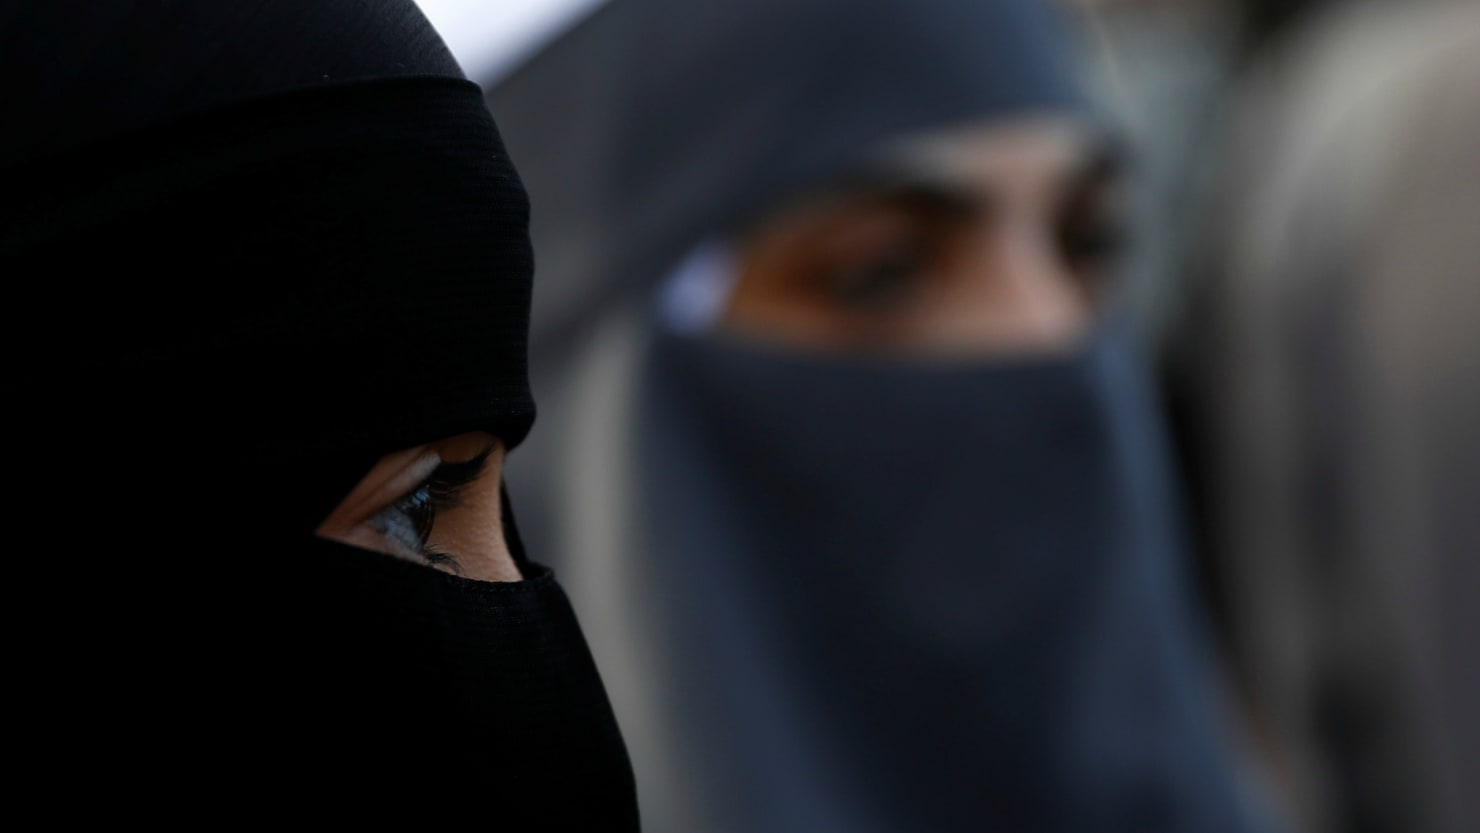 Swiss region votes in favor of burka ban